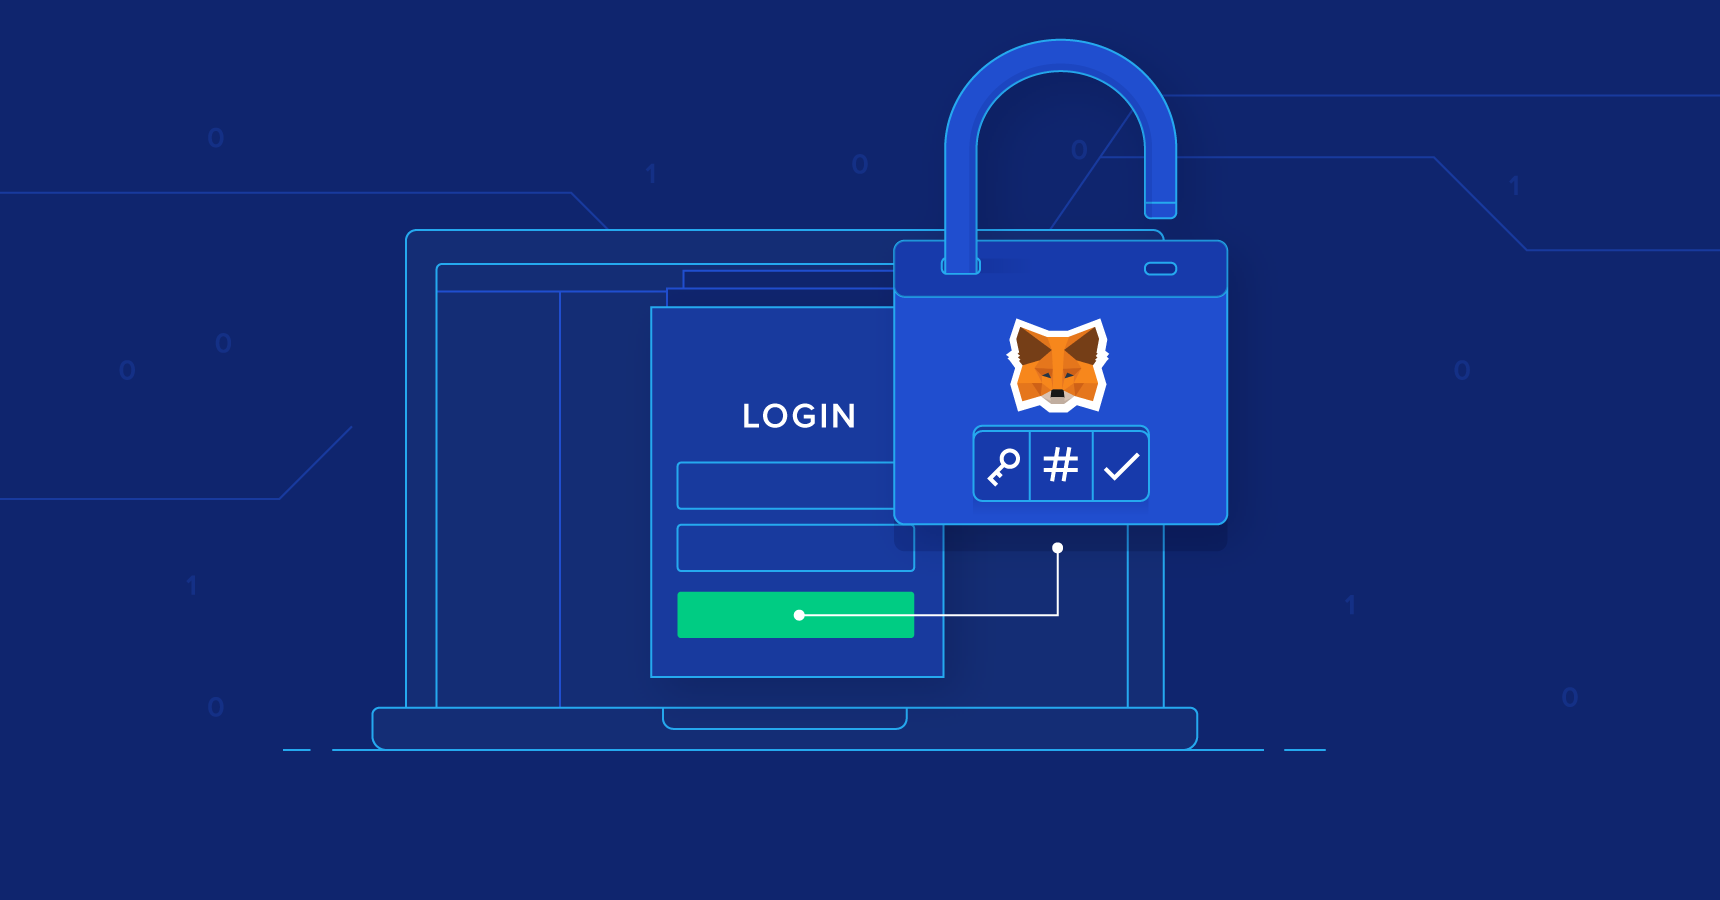 MetaMask Tutorial: One-click Login With Blockchain Made Easy | Toptal